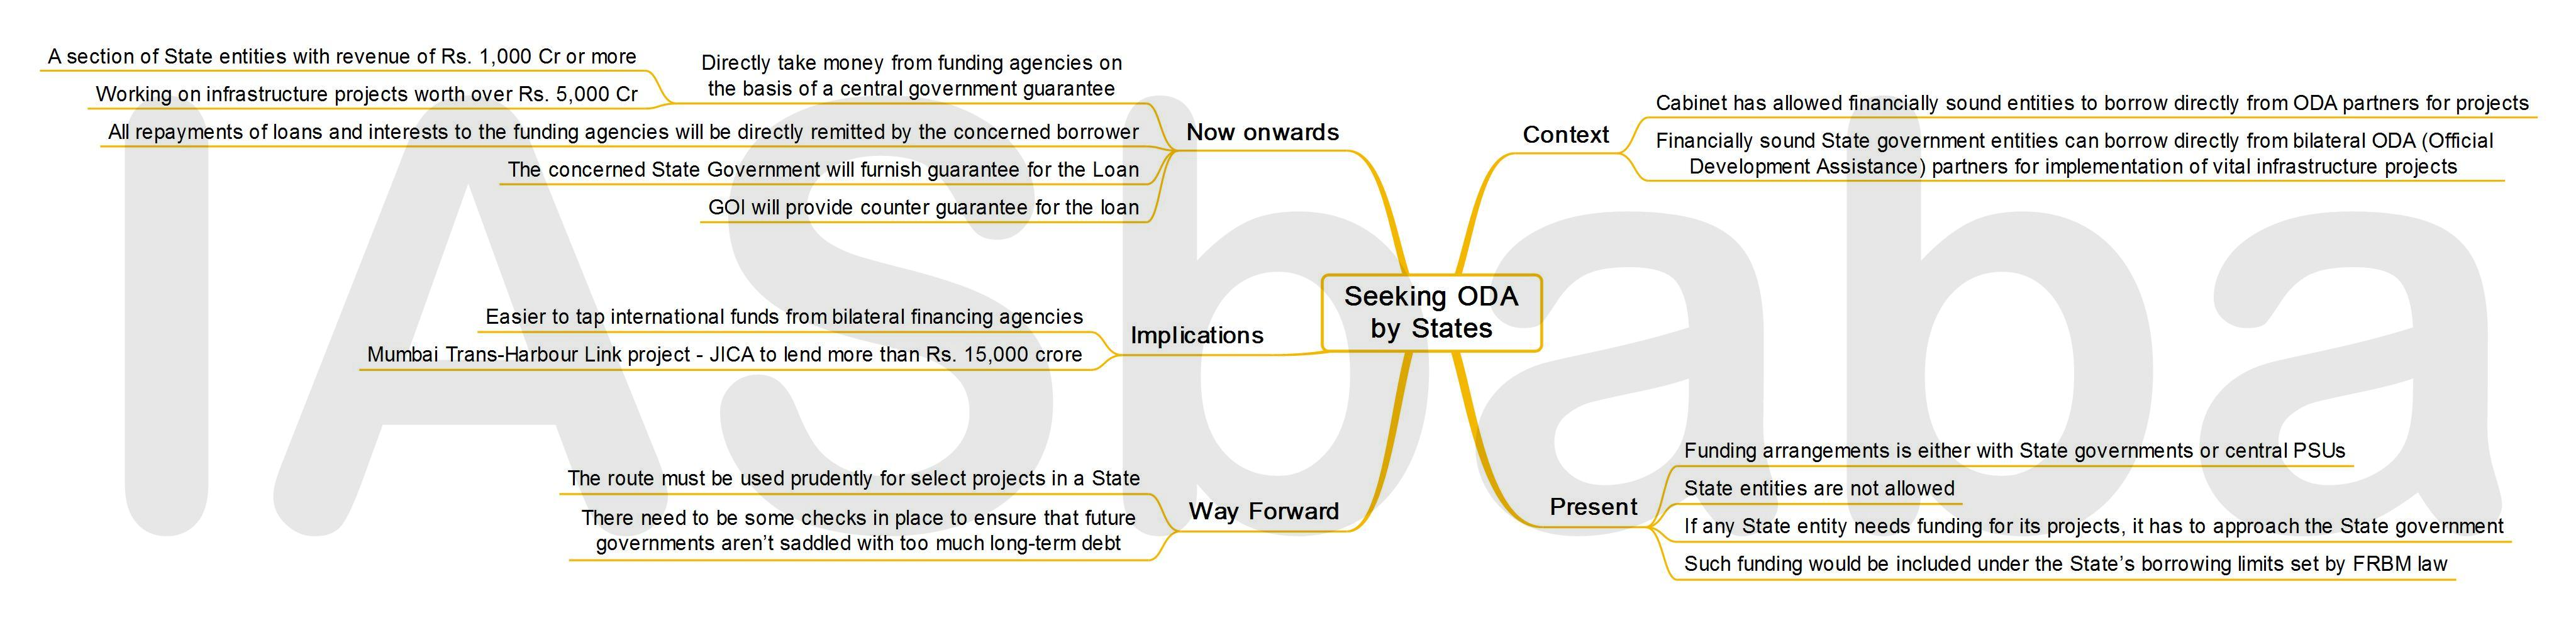 IASbaba's MINDMAP : Issue - Seeking ODA by States